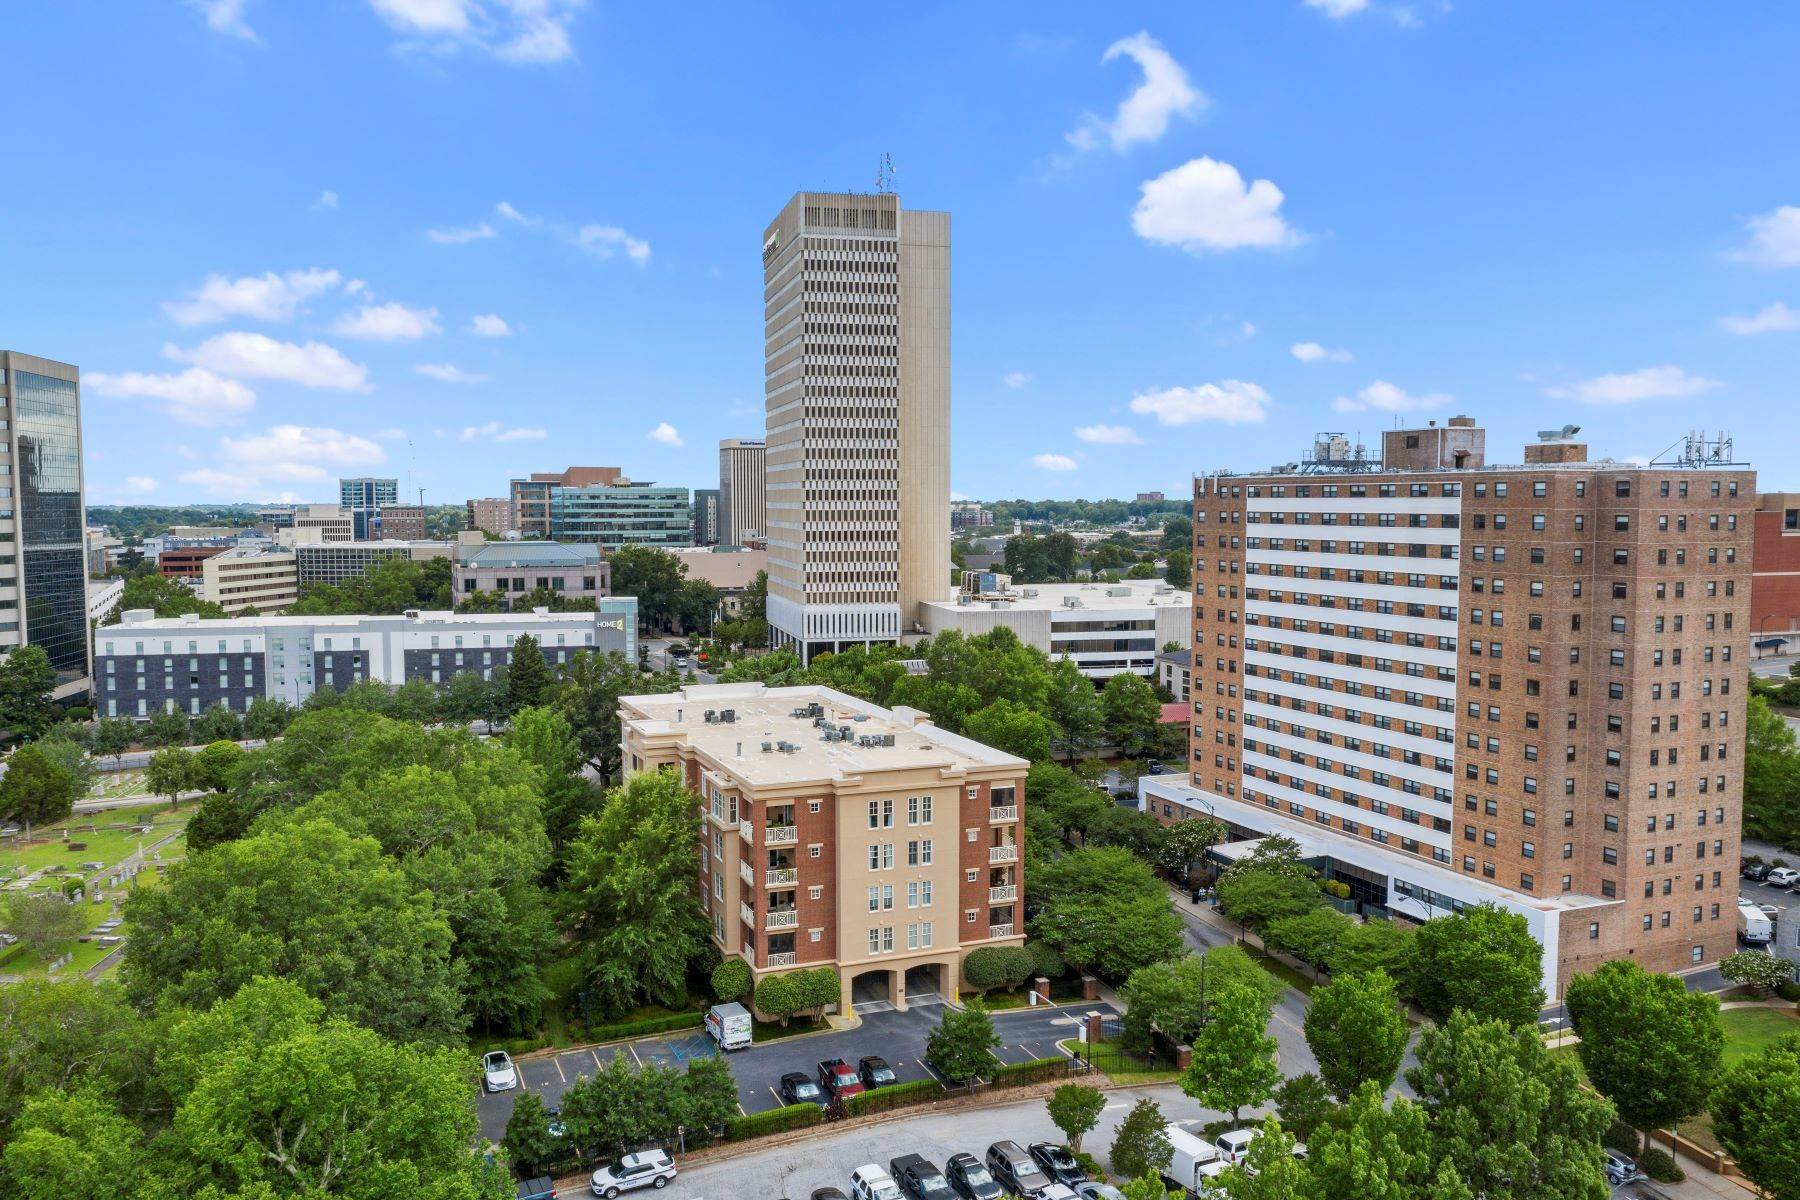 Property for Sale at UNDER CONTRACT! 400 North Main Street, Greenville, SC 29601 400 North Main Street, Unit 502, Greenville, SC 29601